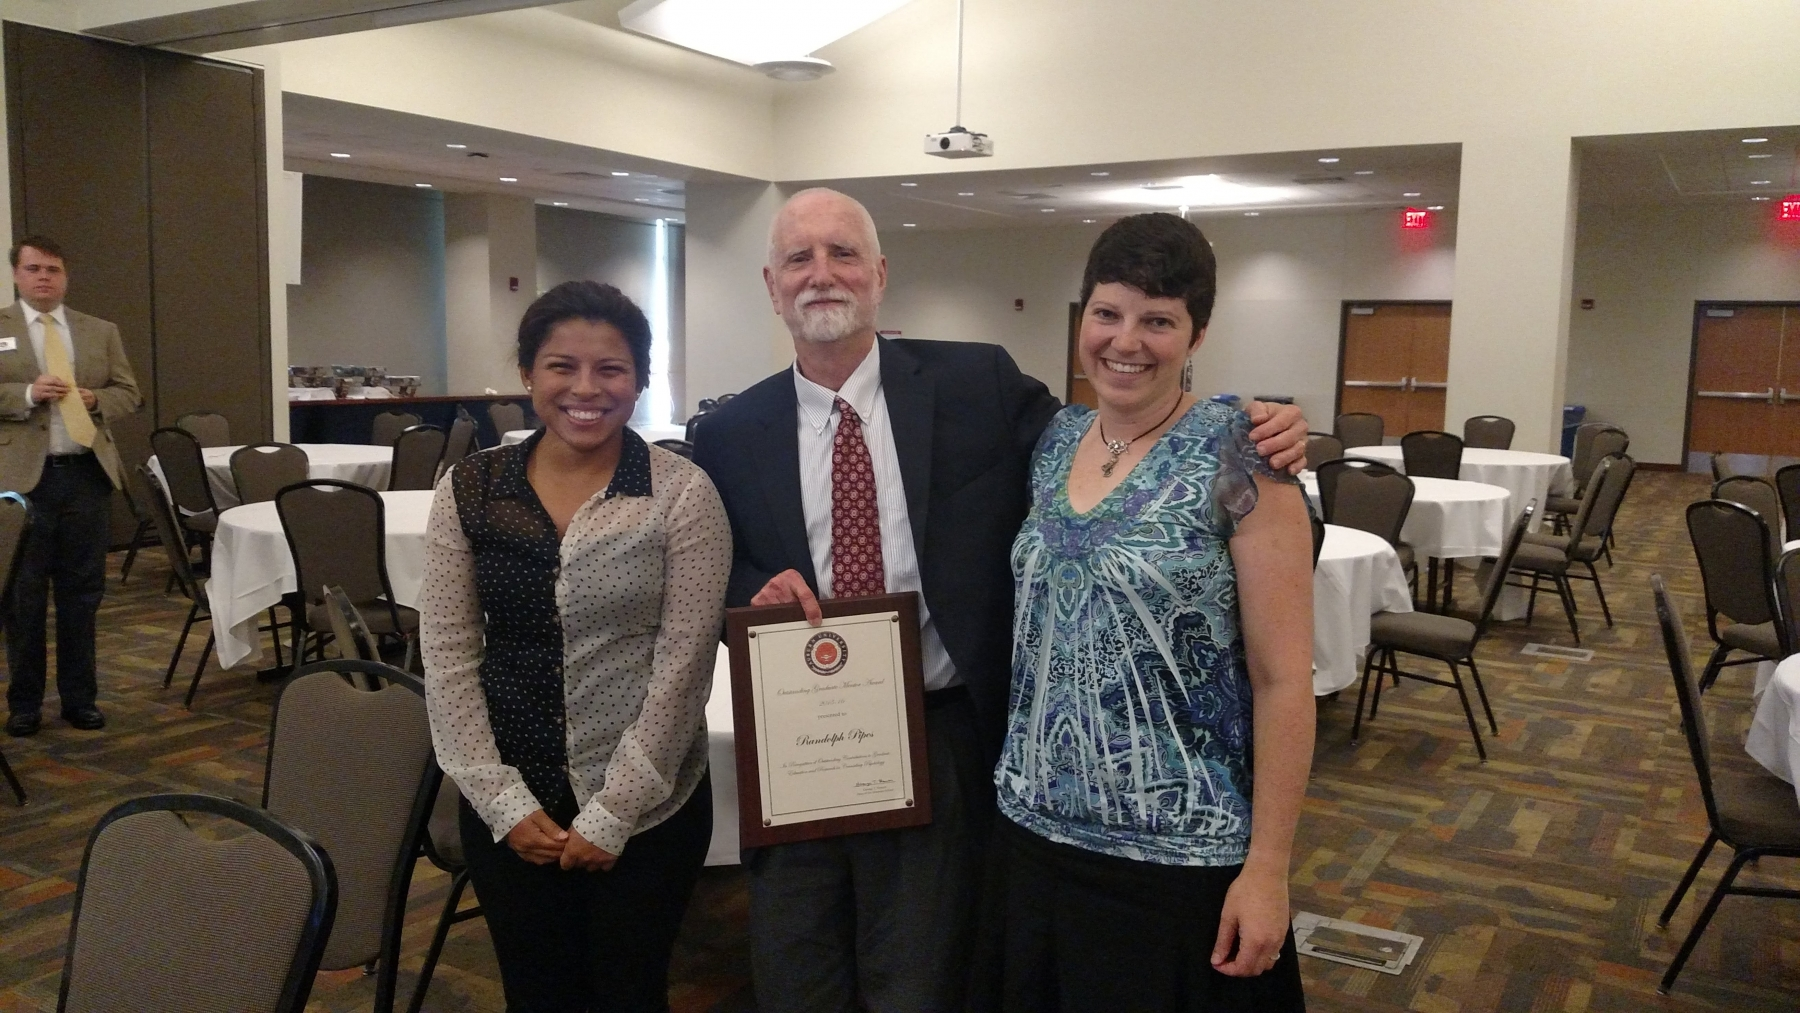 Dr. Pipes receiving AU Award